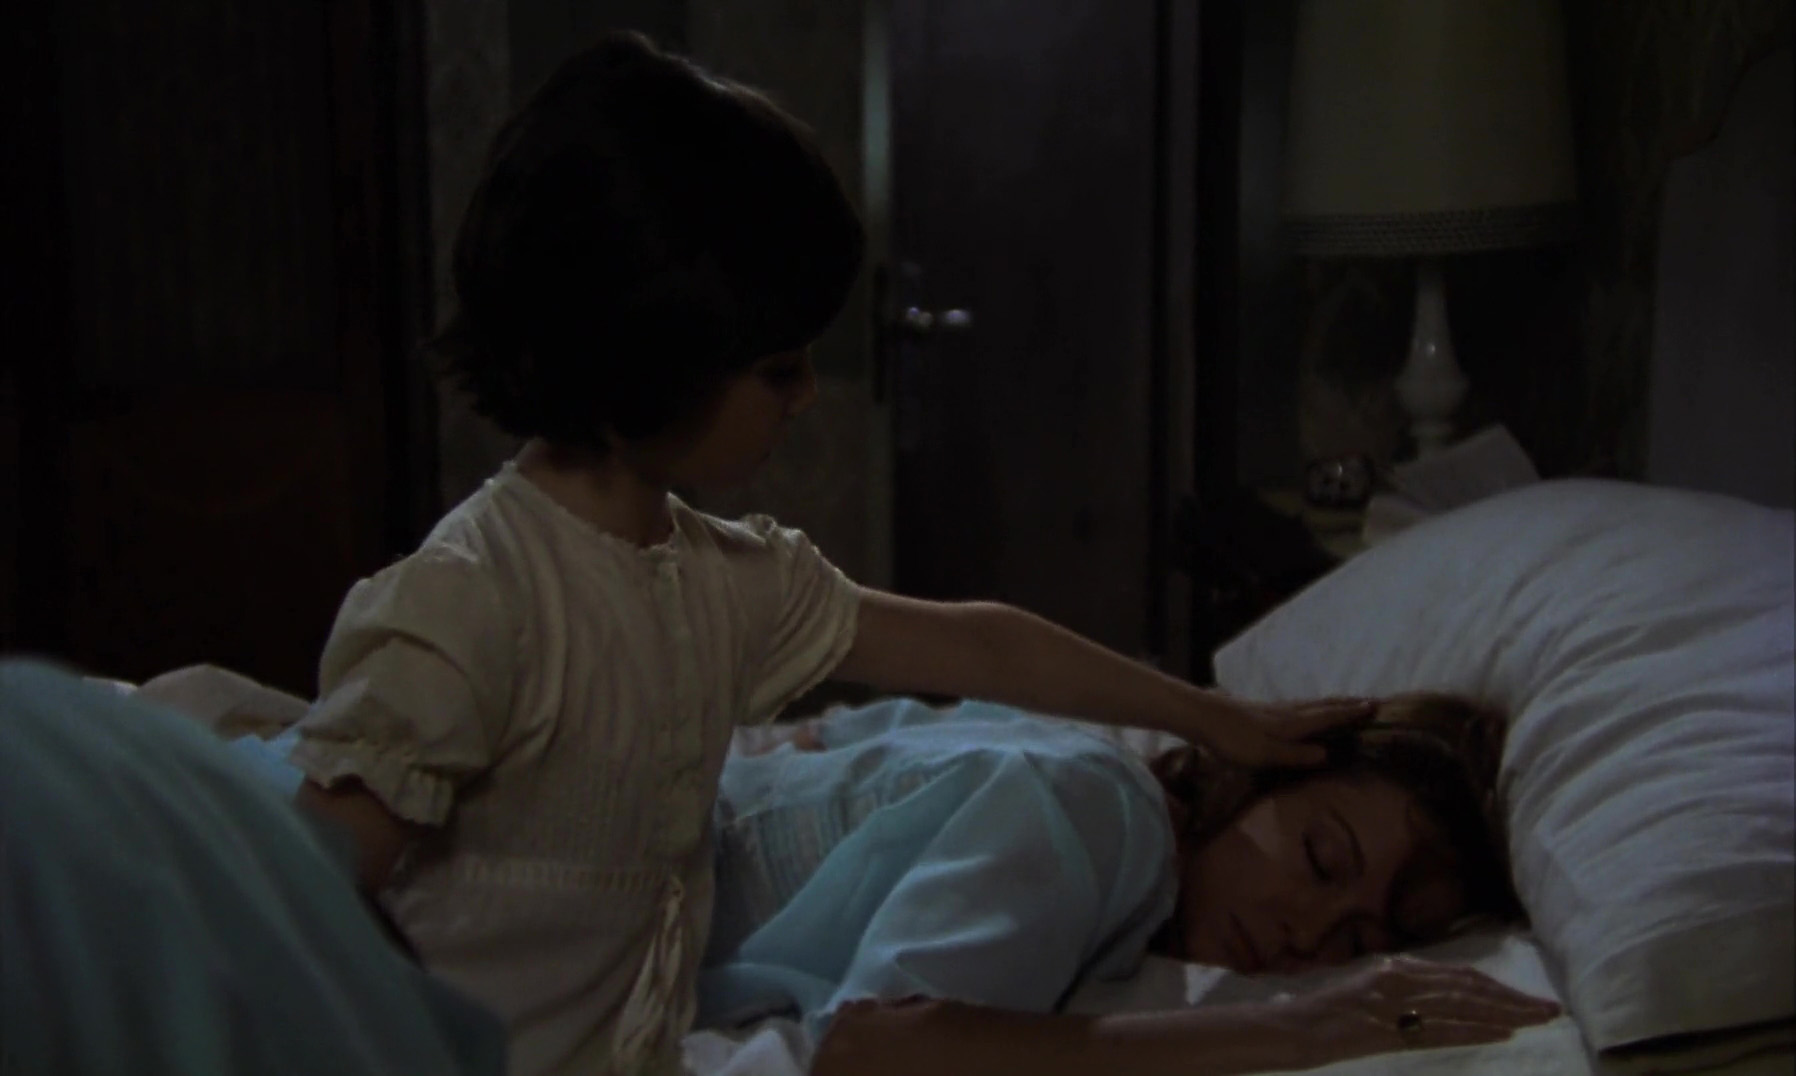 Mónica Randall and Ana Torrent in Cría cuervos (1976)